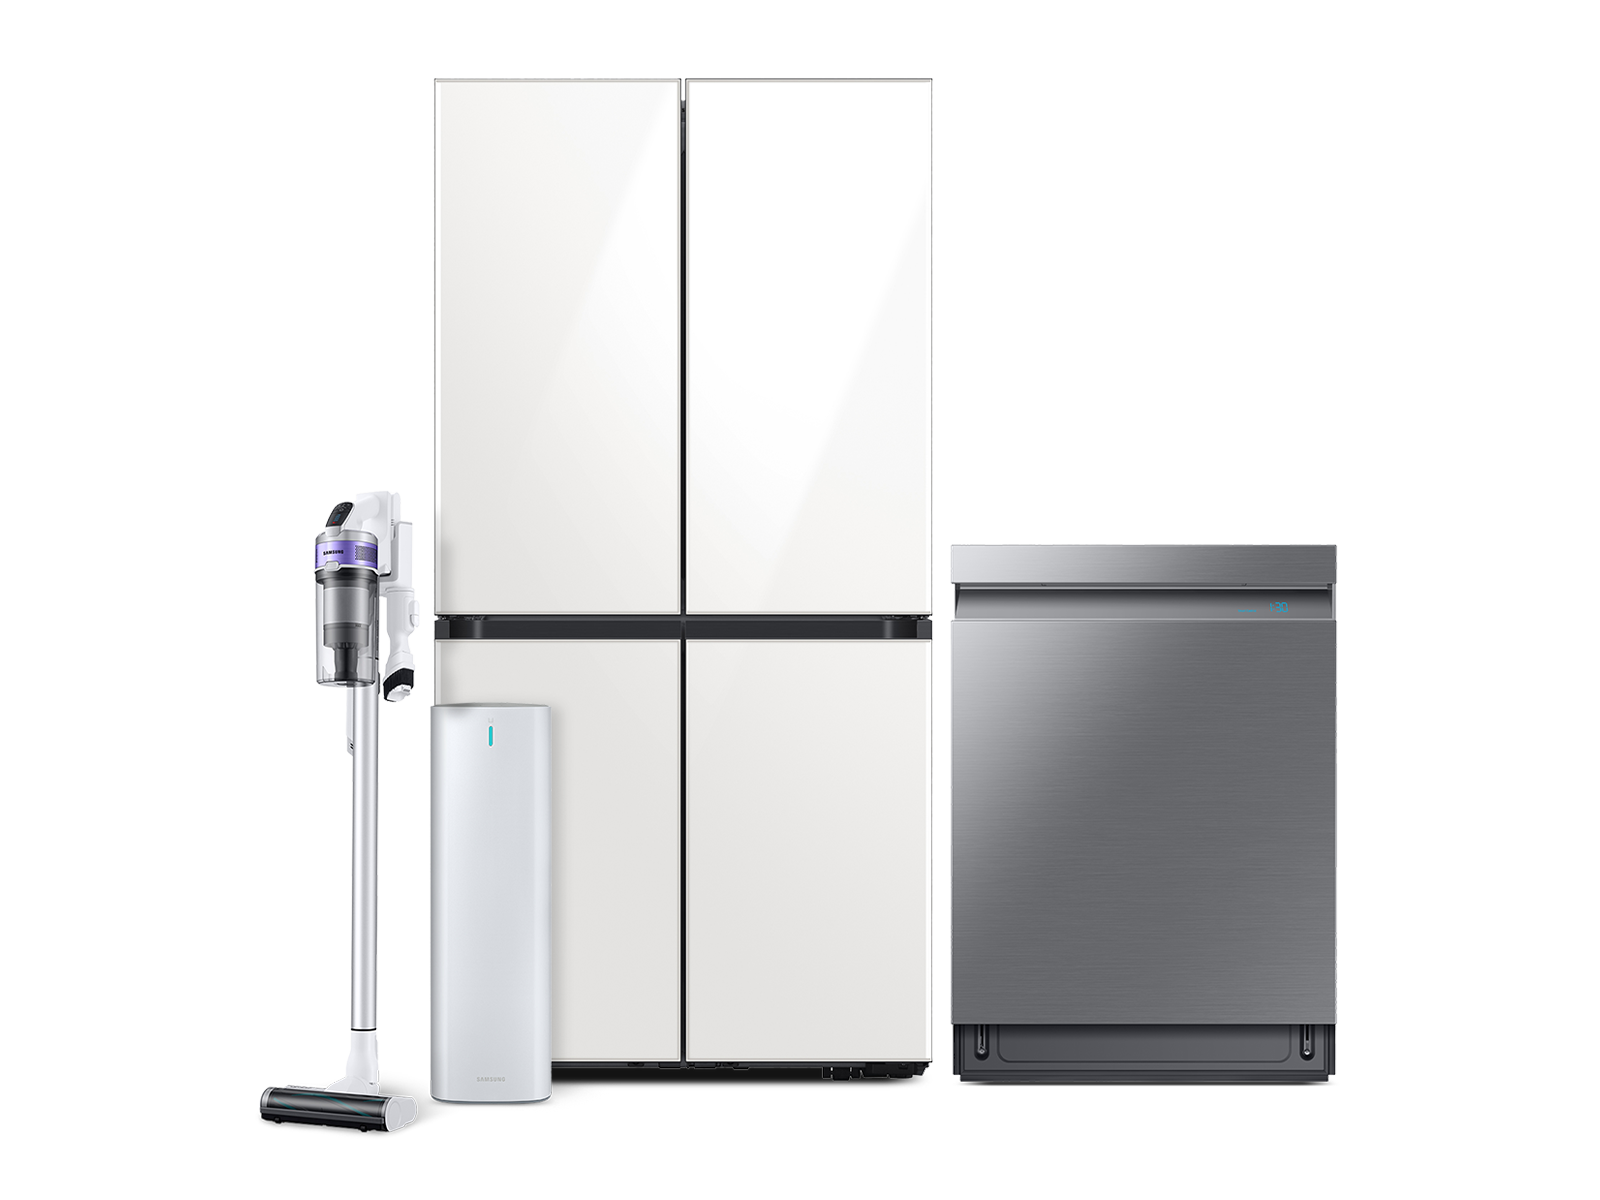 BESPOKE 4-Door Flex? Refrigerator in White Glass, Smart Linear Wash Dishwasher and Jet 70 Pet Cordless Stick Vacuum with Clean Station? package